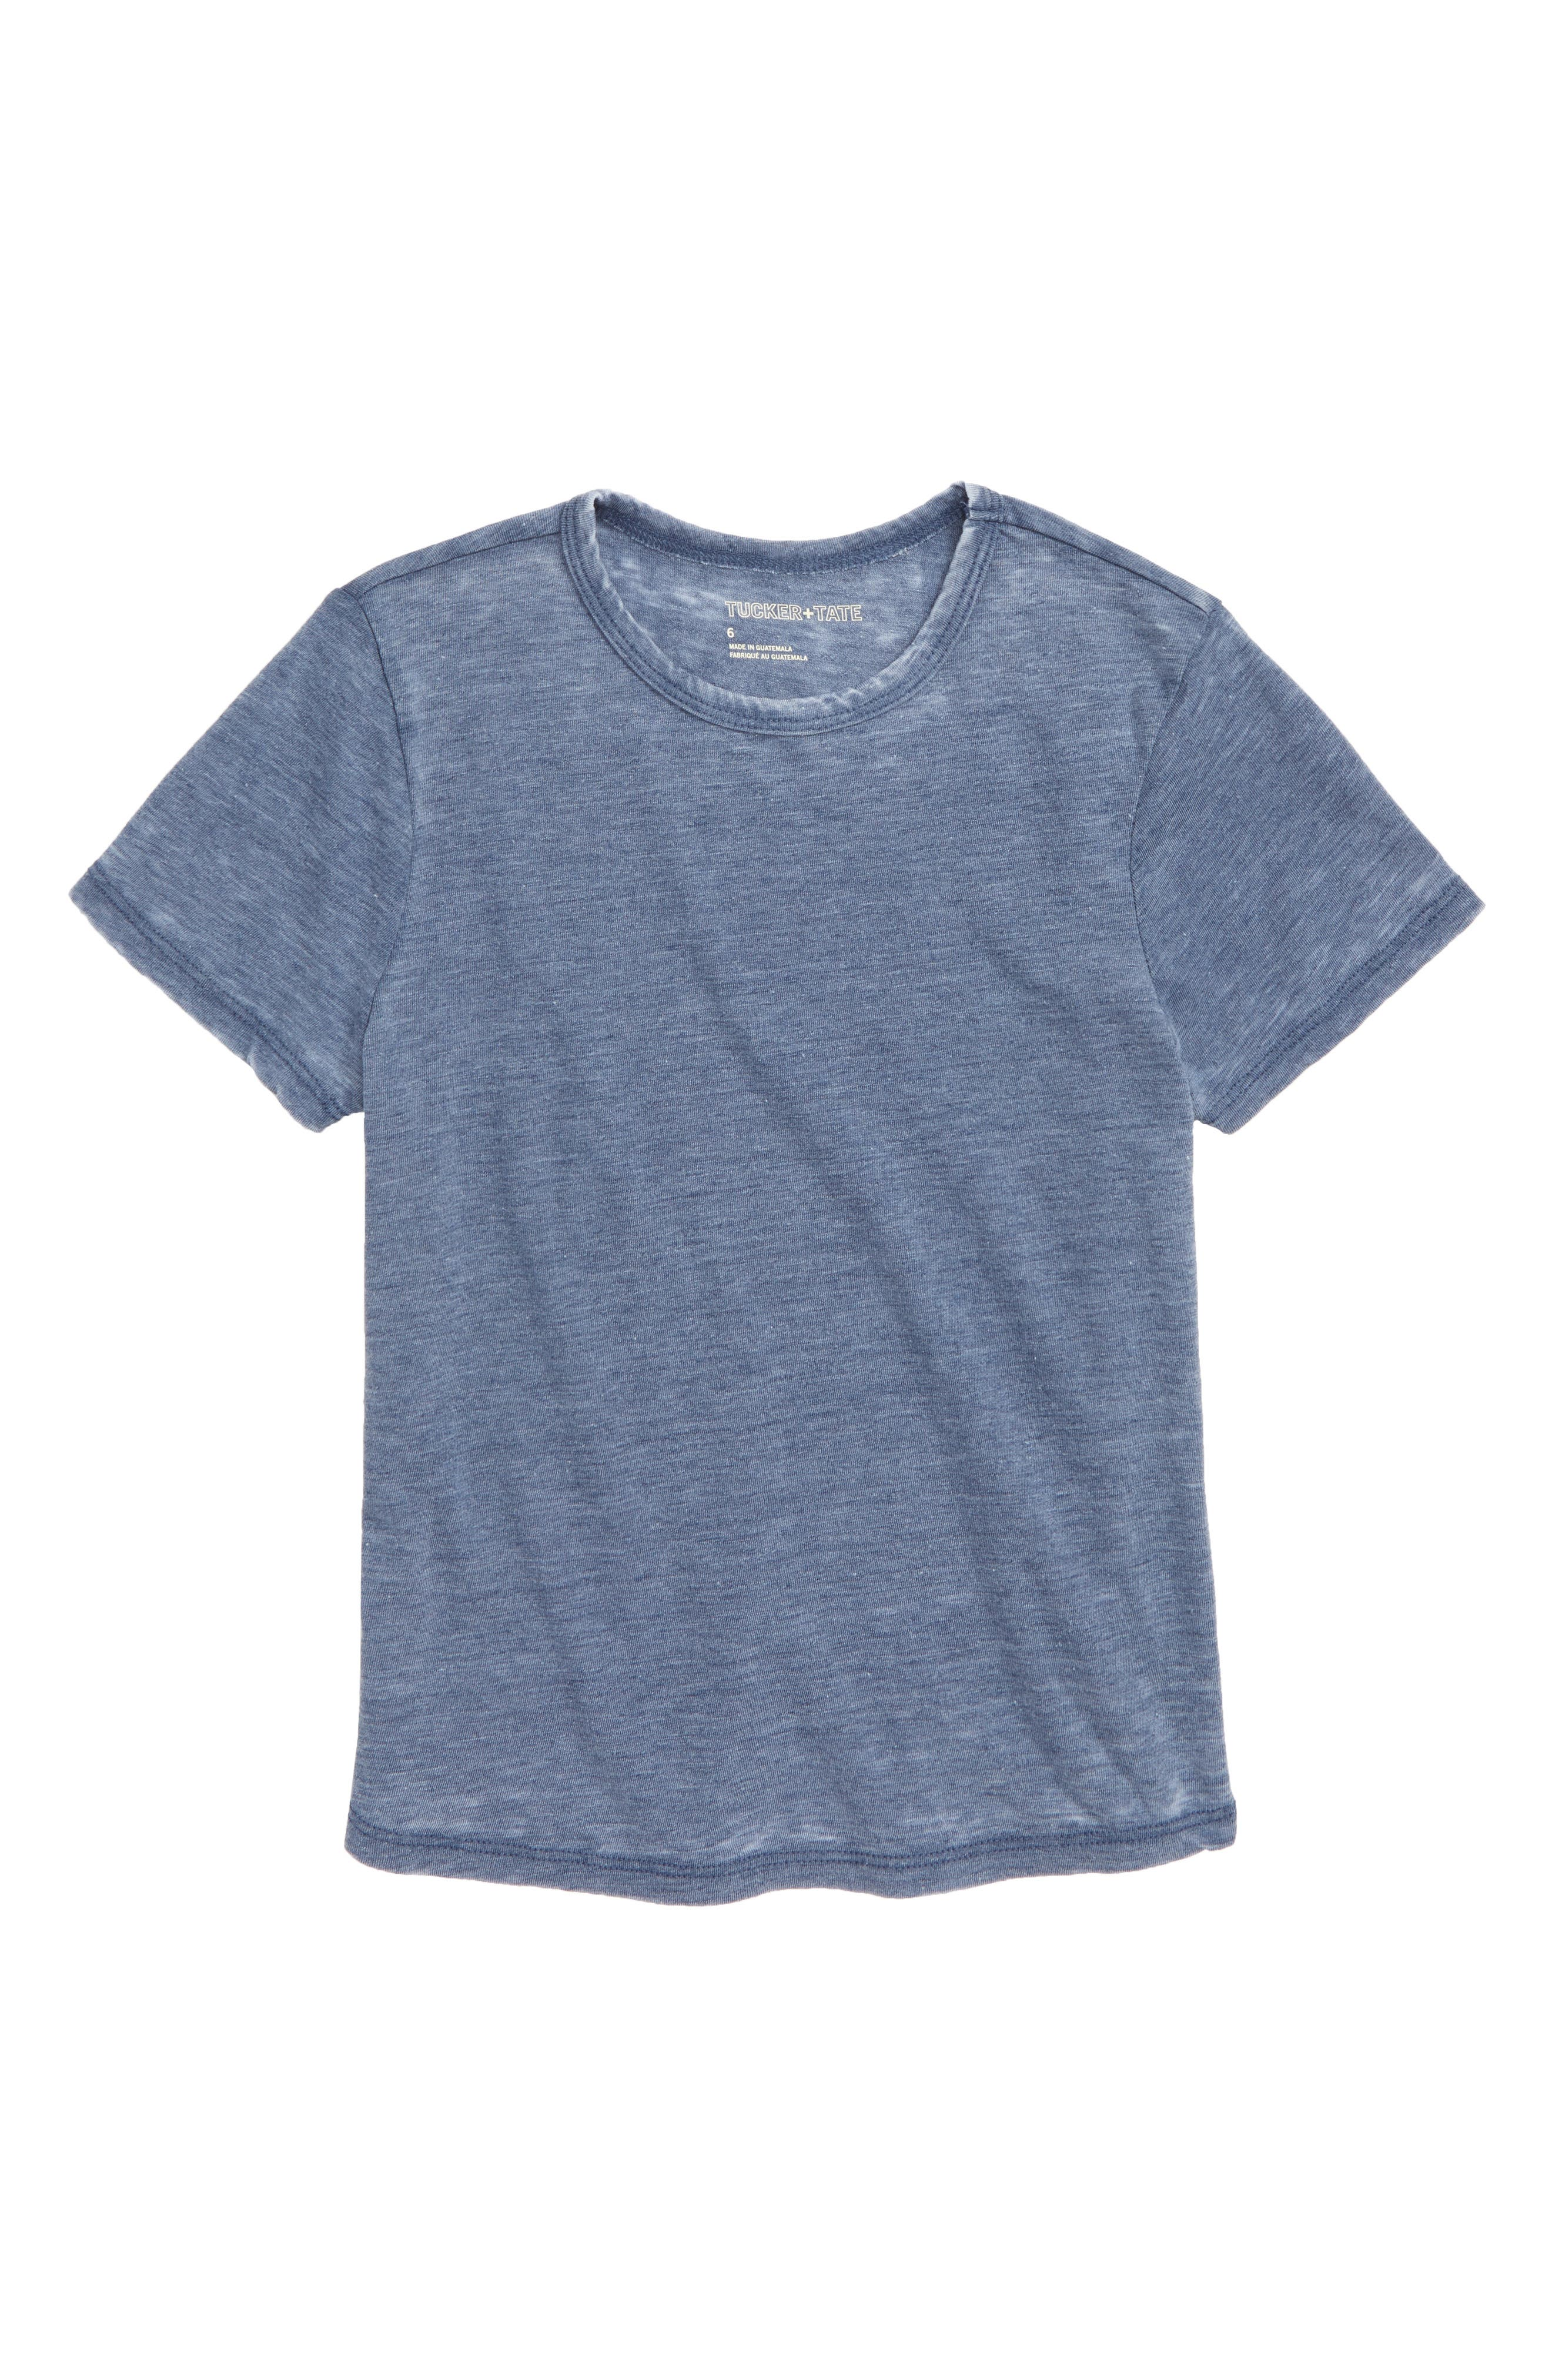 All Day Every Day T-Shirt, Main, color, BLUE OASIS